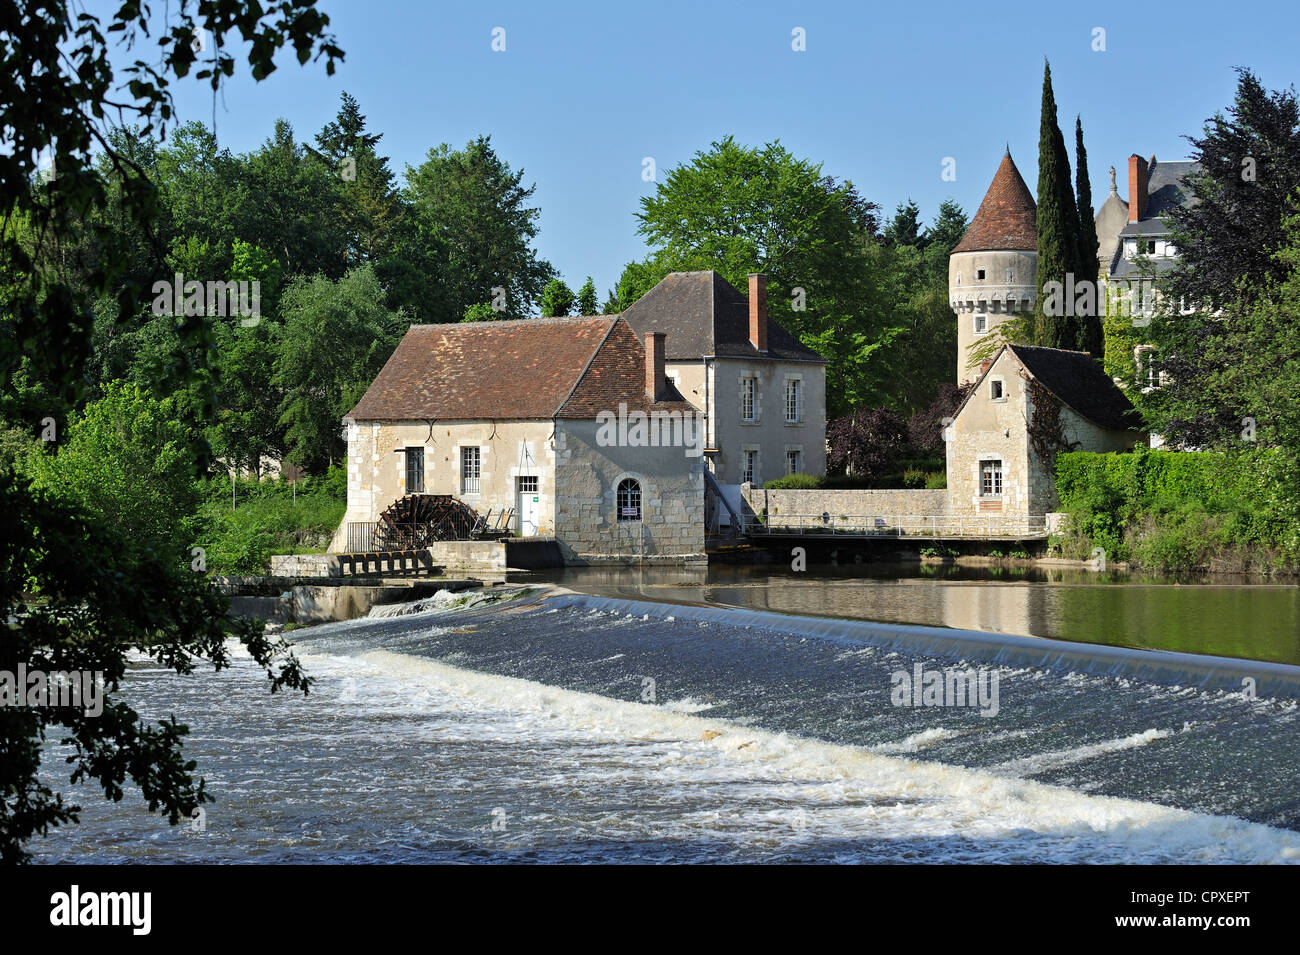 watermill of the abbey abbaye notre dame de fontgombault benedictine stock photo 48525536 alamy. Black Bedroom Furniture Sets. Home Design Ideas